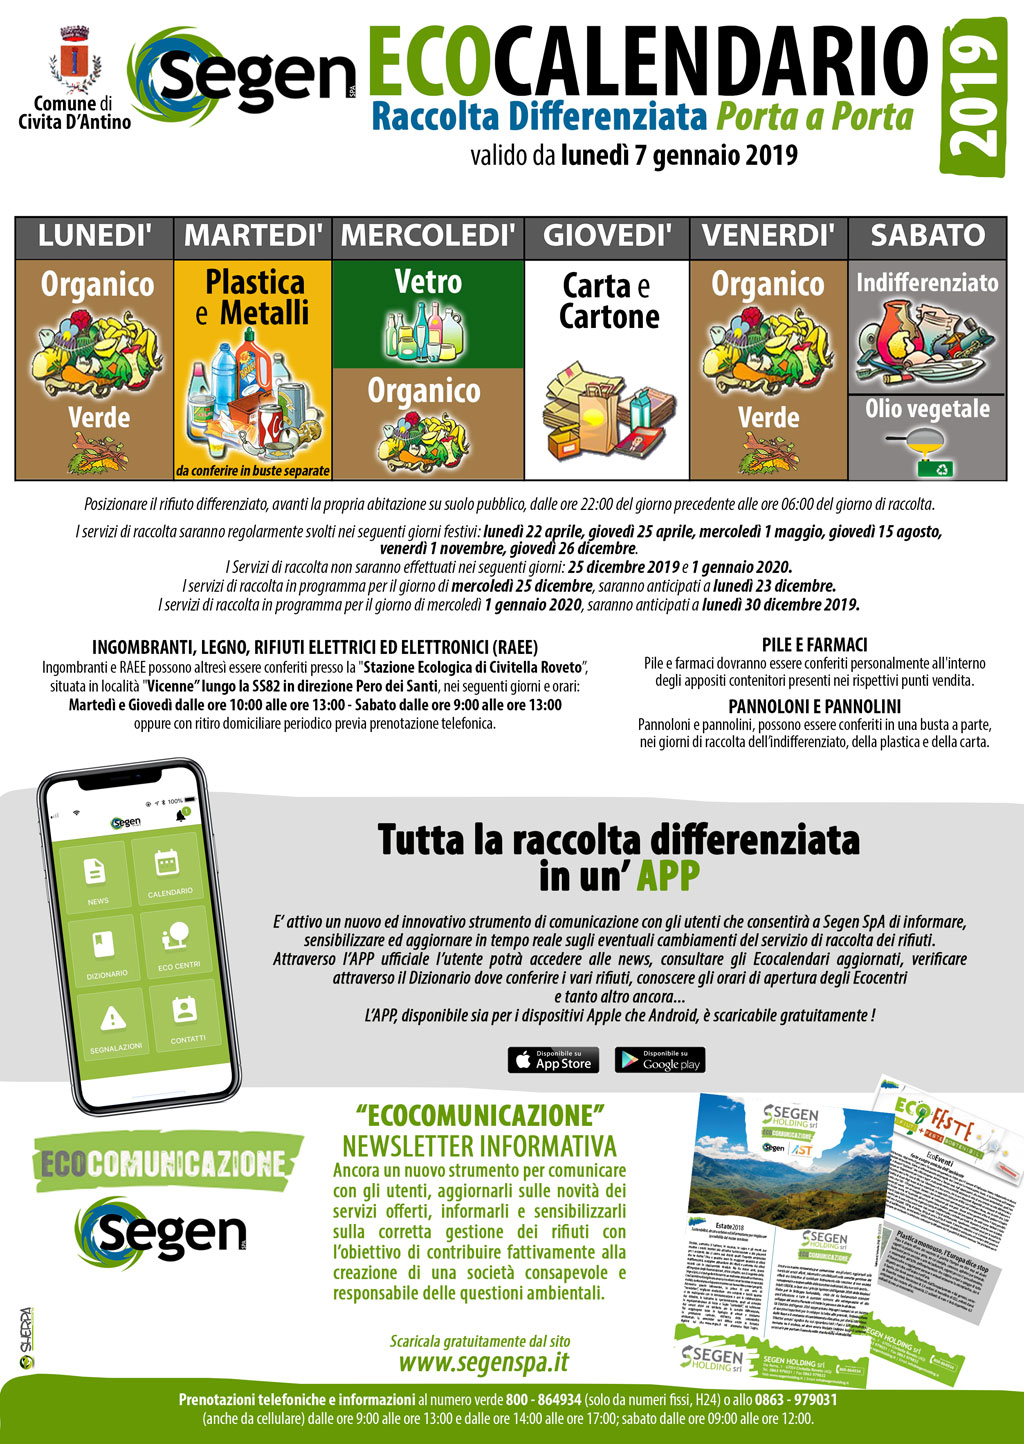 Raccolta Differenziata - ecoCalendario 2019